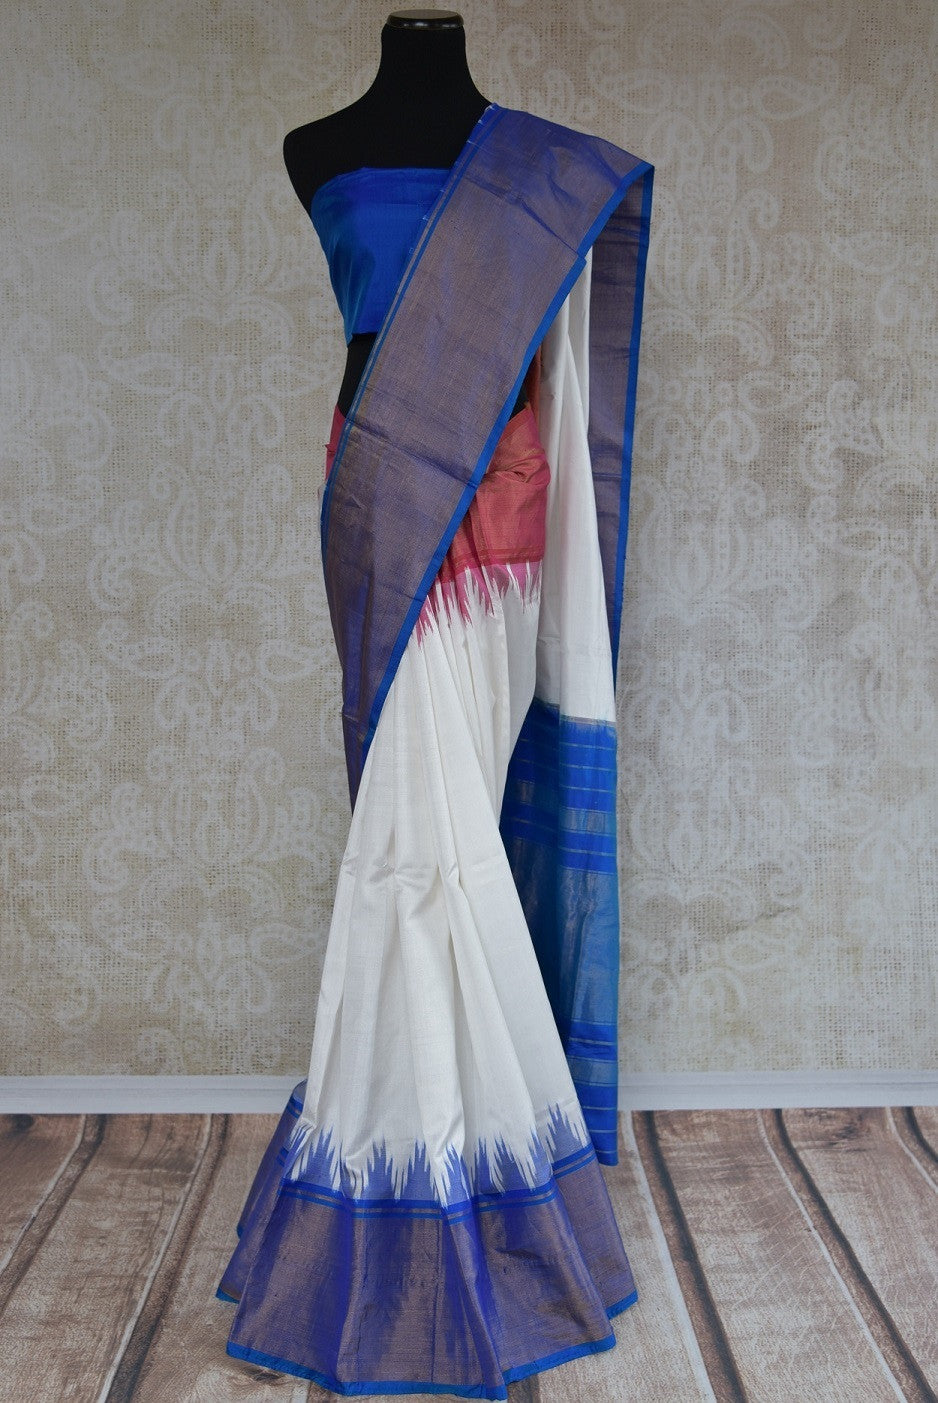 90B767 A silk ikkat saree that makes for a lovely & simple Indian outfit. The blue white & red sari can be bought online at our ethnic Indian wear store online in USA. For parties, as well as ethnic festivities, this saree is a versatile hit!